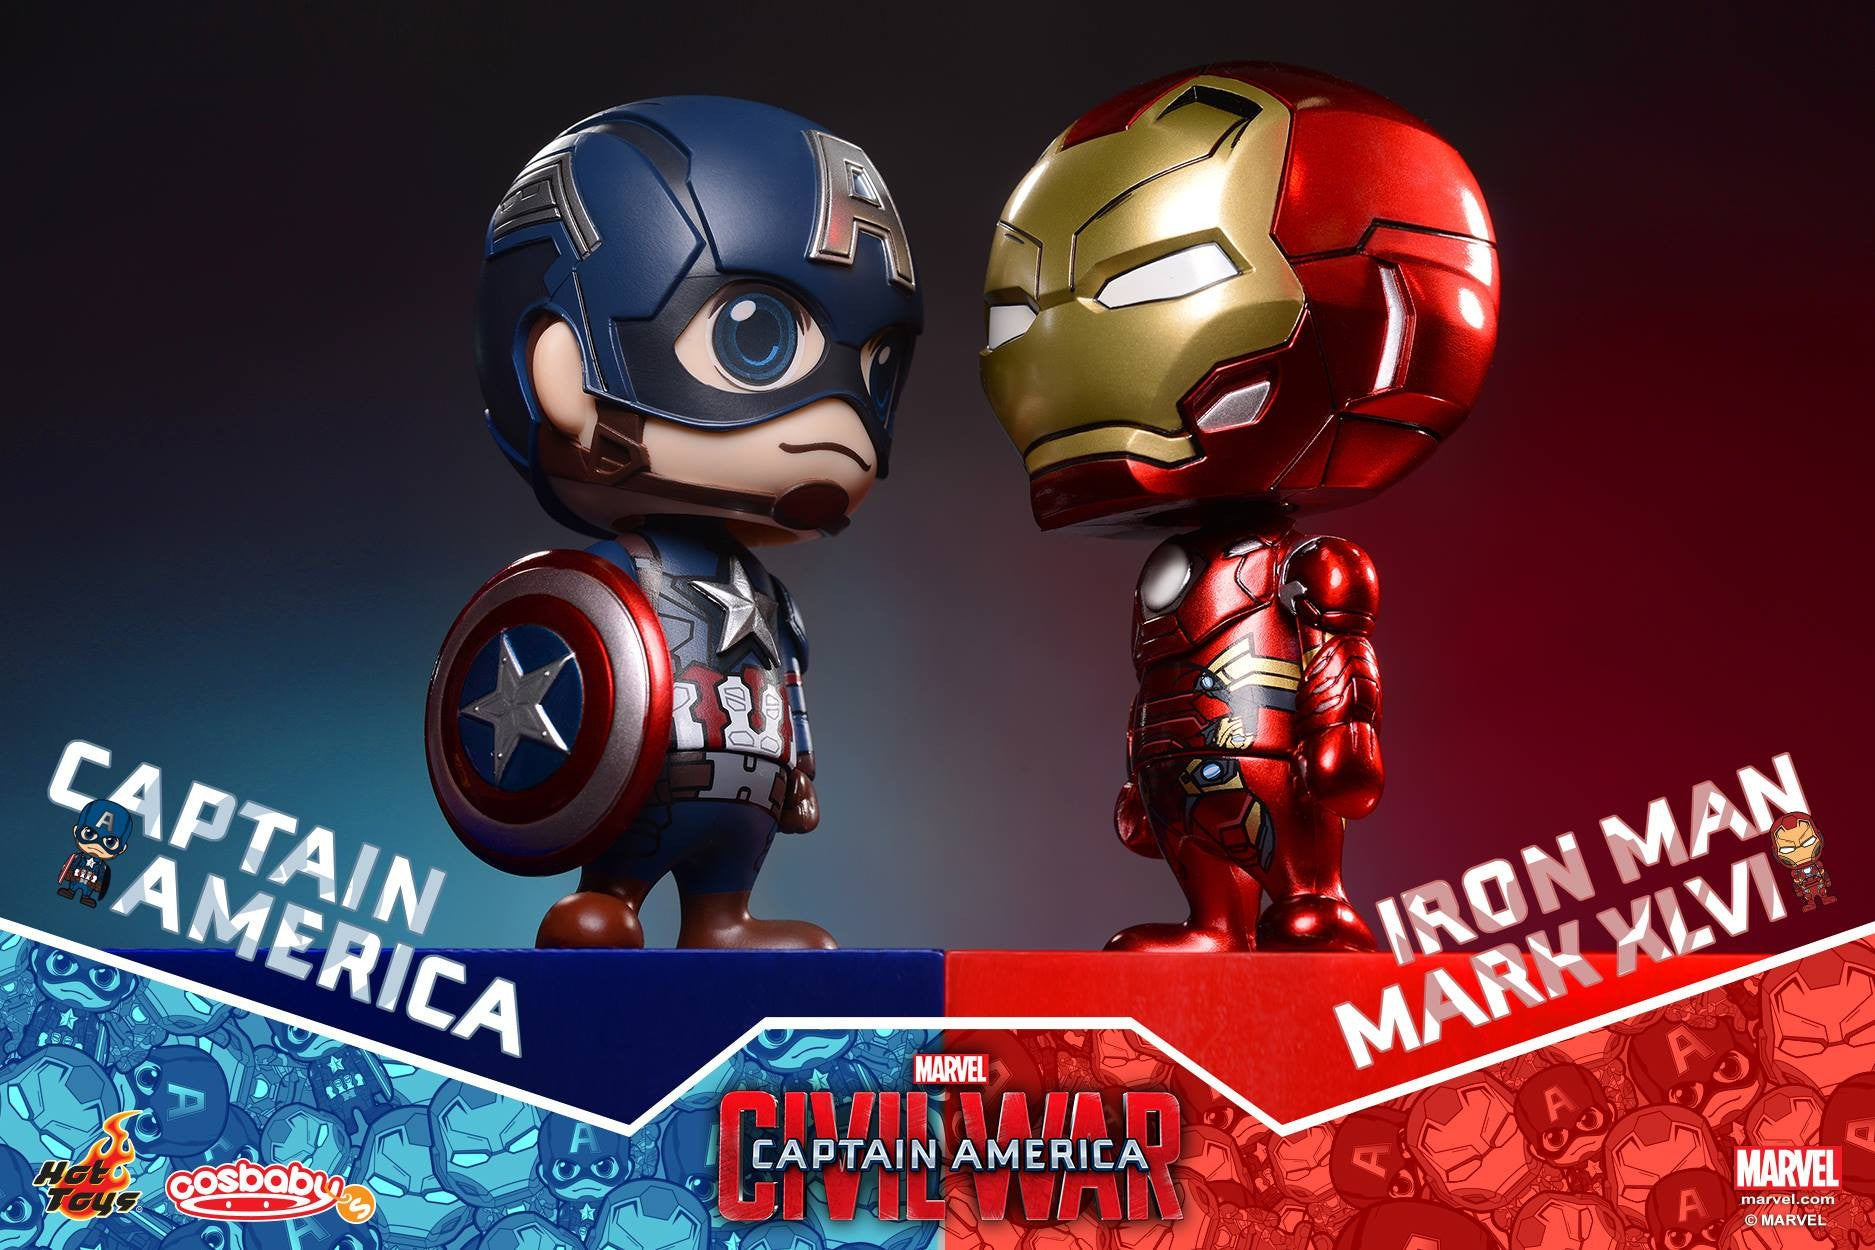 Hot Toys - COSB199-200 - Captain America: Civil War - Captain America & Iron Man Mark XLVI Cosbaby Bobble-Head Set - Marvelous Toys - 2